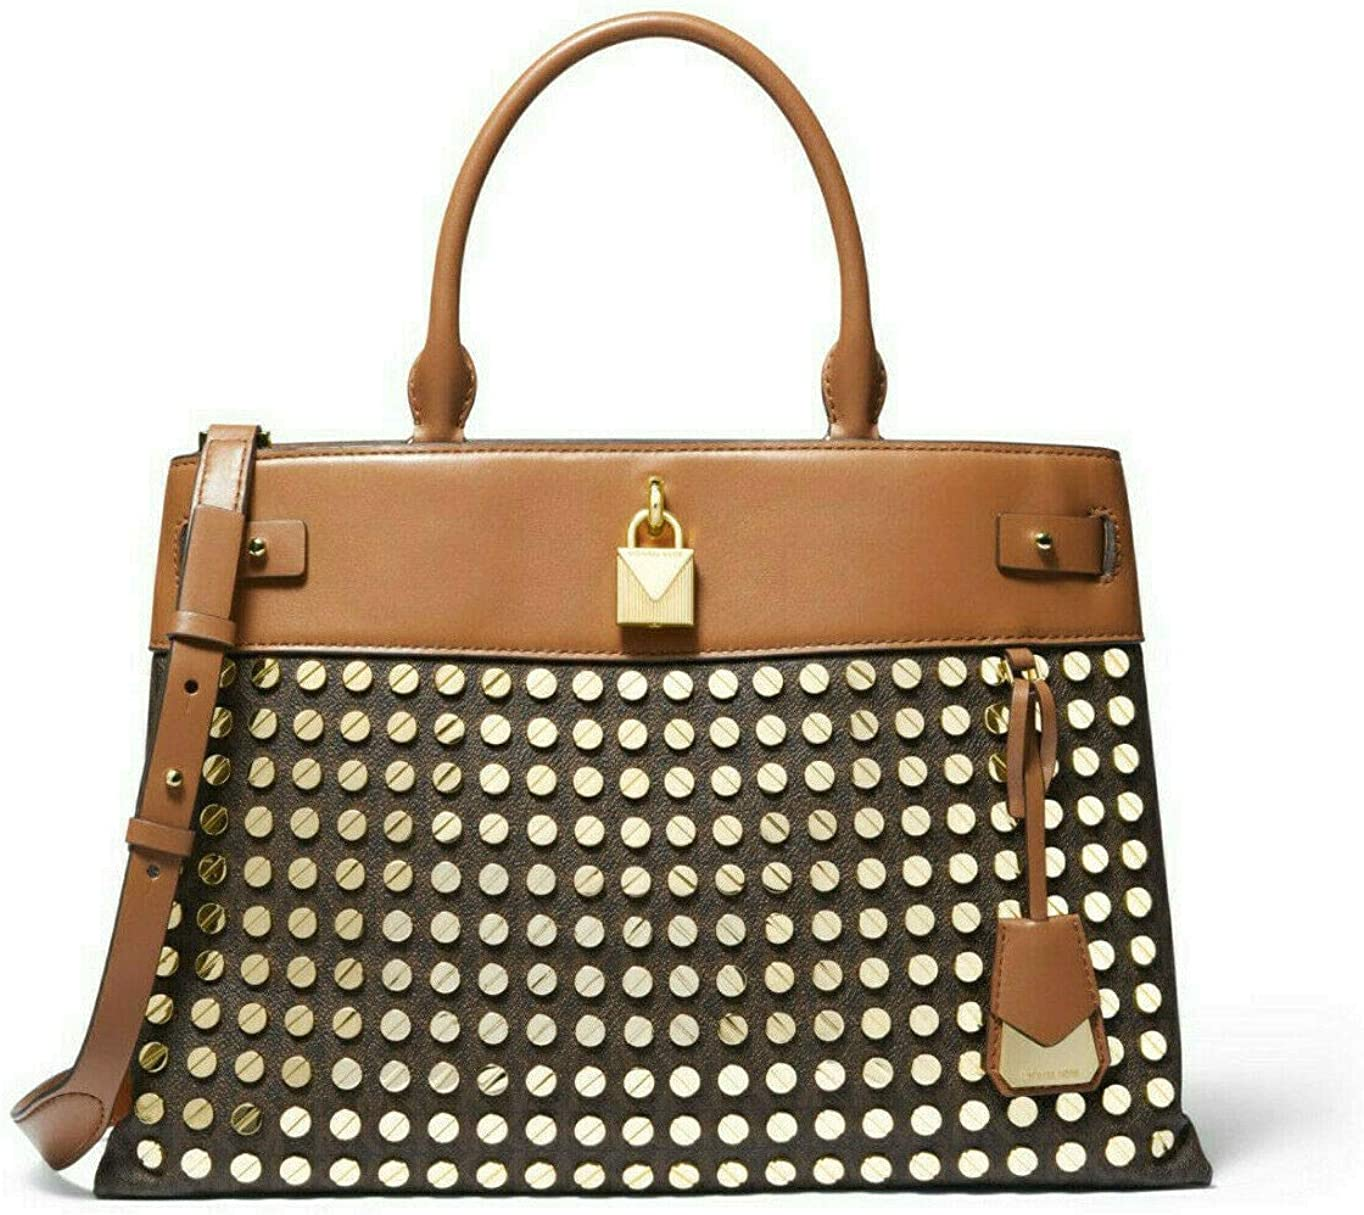 MICHAEL Michael Kors Gramercy Large Studded Logo and Leather Satchel in Brown/Acorn